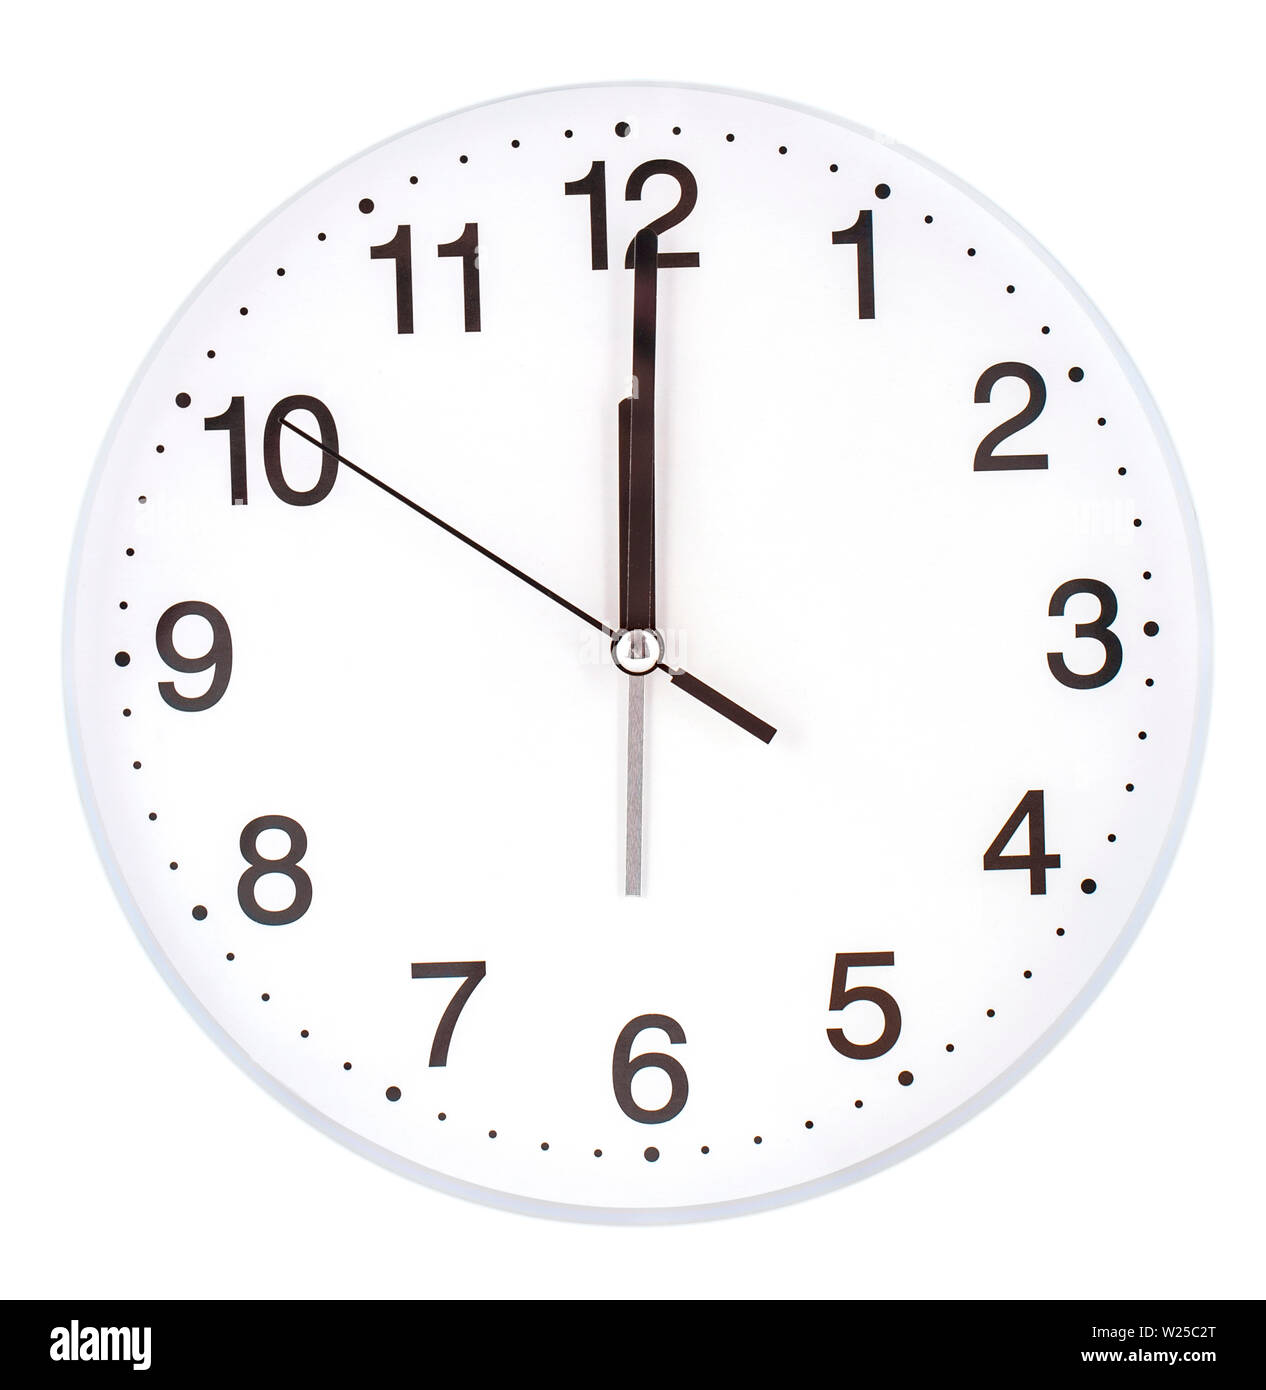 Blank Clock Face With Hour Minute And Second Hands Isolated On White Background Stock Photo Alamy